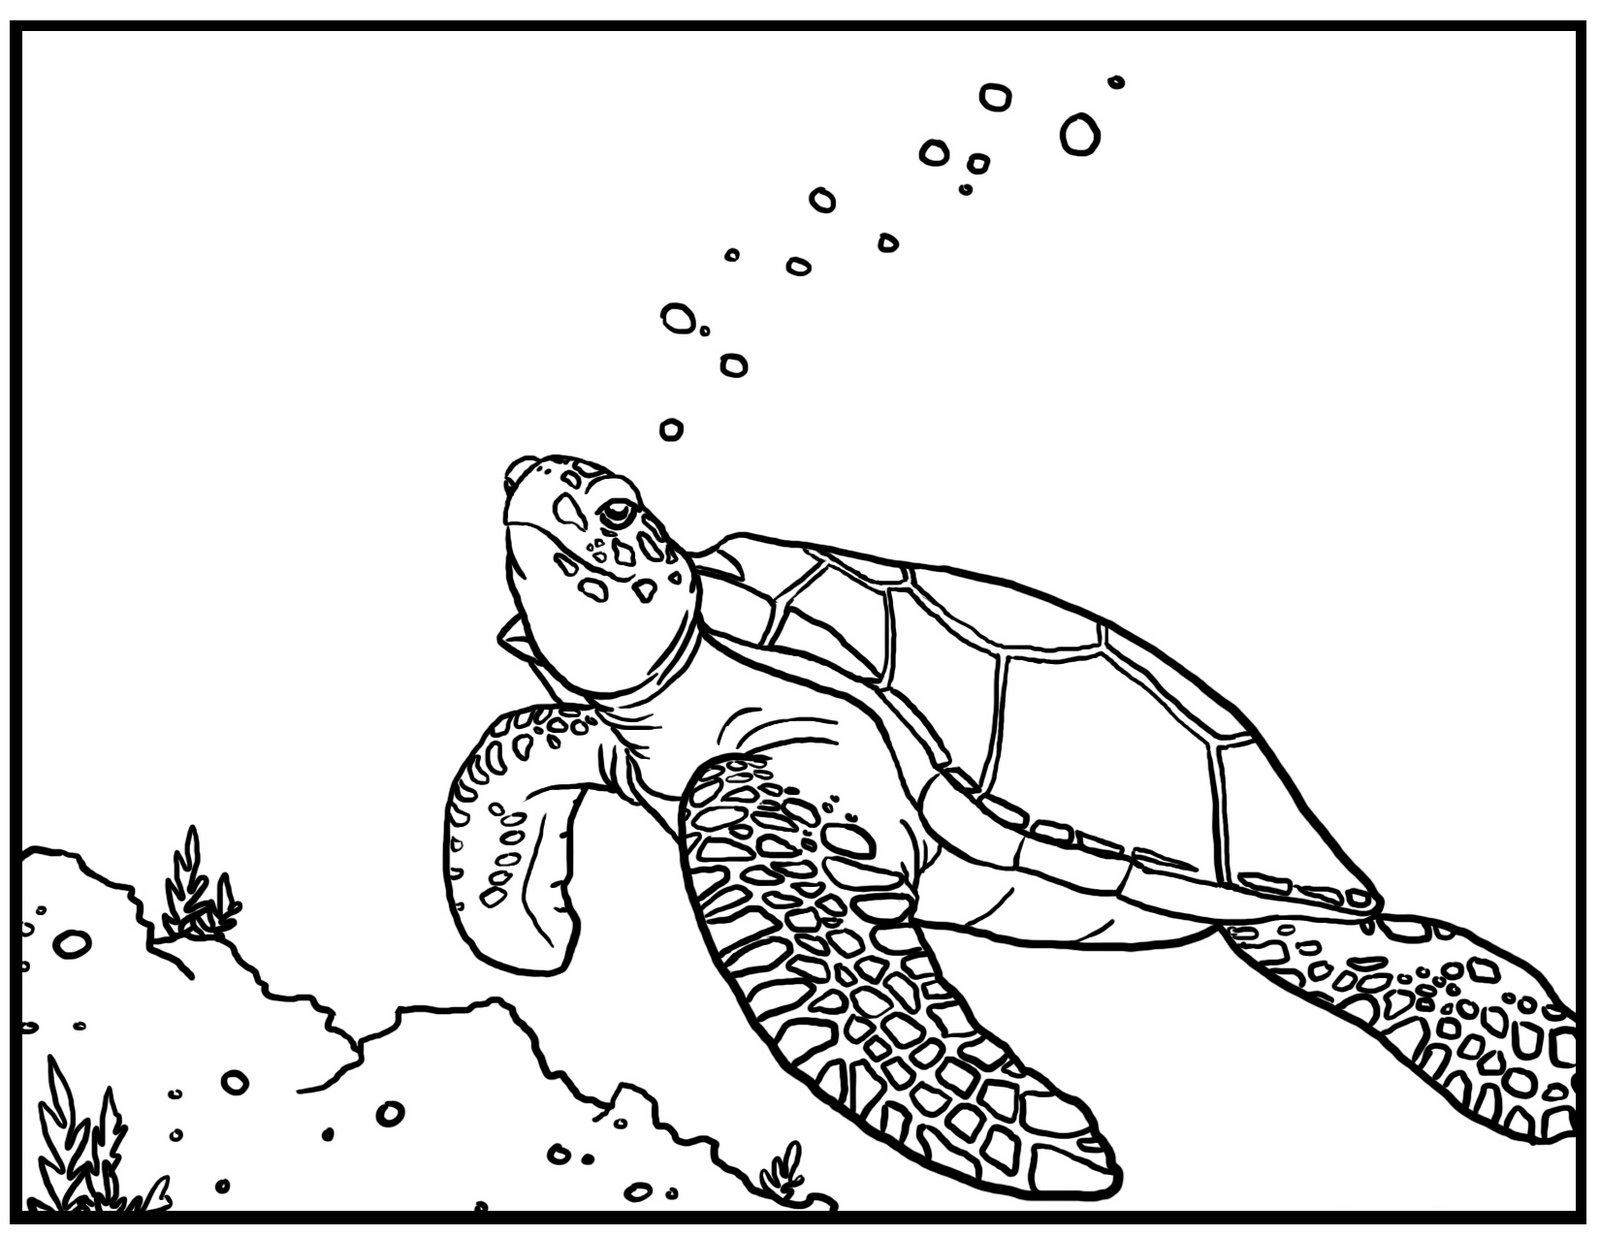 turtle coloring pages images - Turtle Coloring Pages For Adults